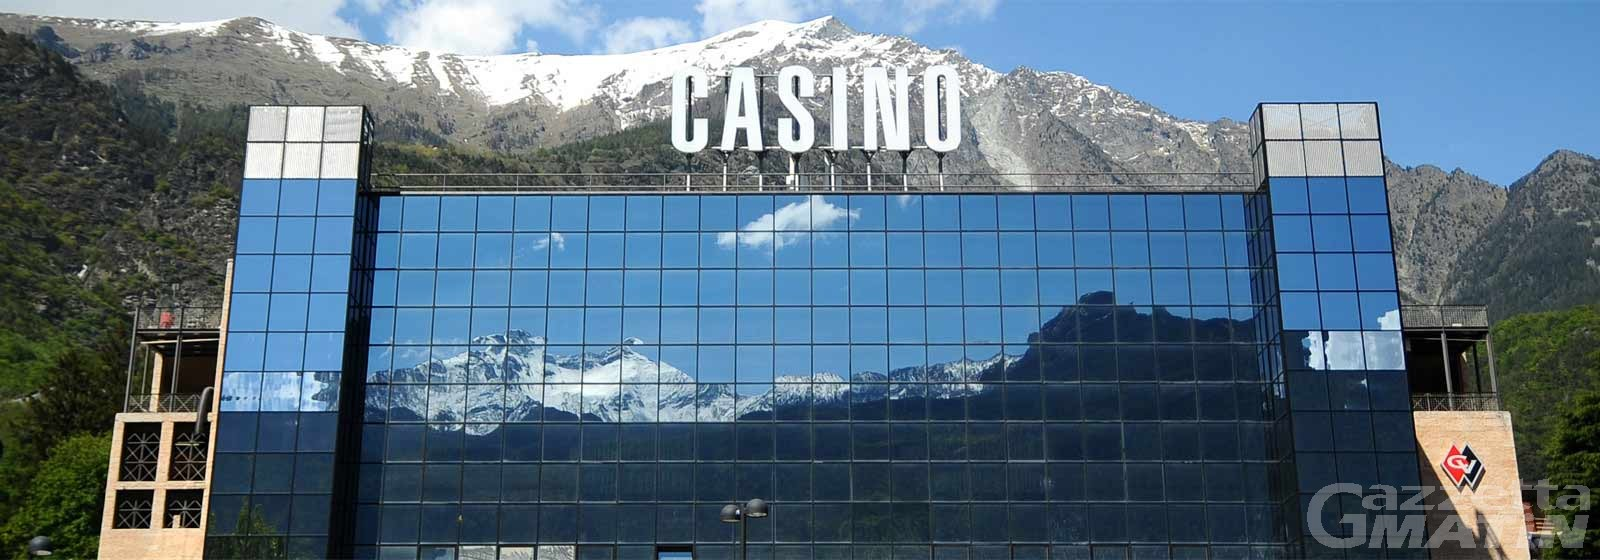 Casinò de la Vallée SpA, il Tribunale dà il via libera alla procedura di concordato preventivo